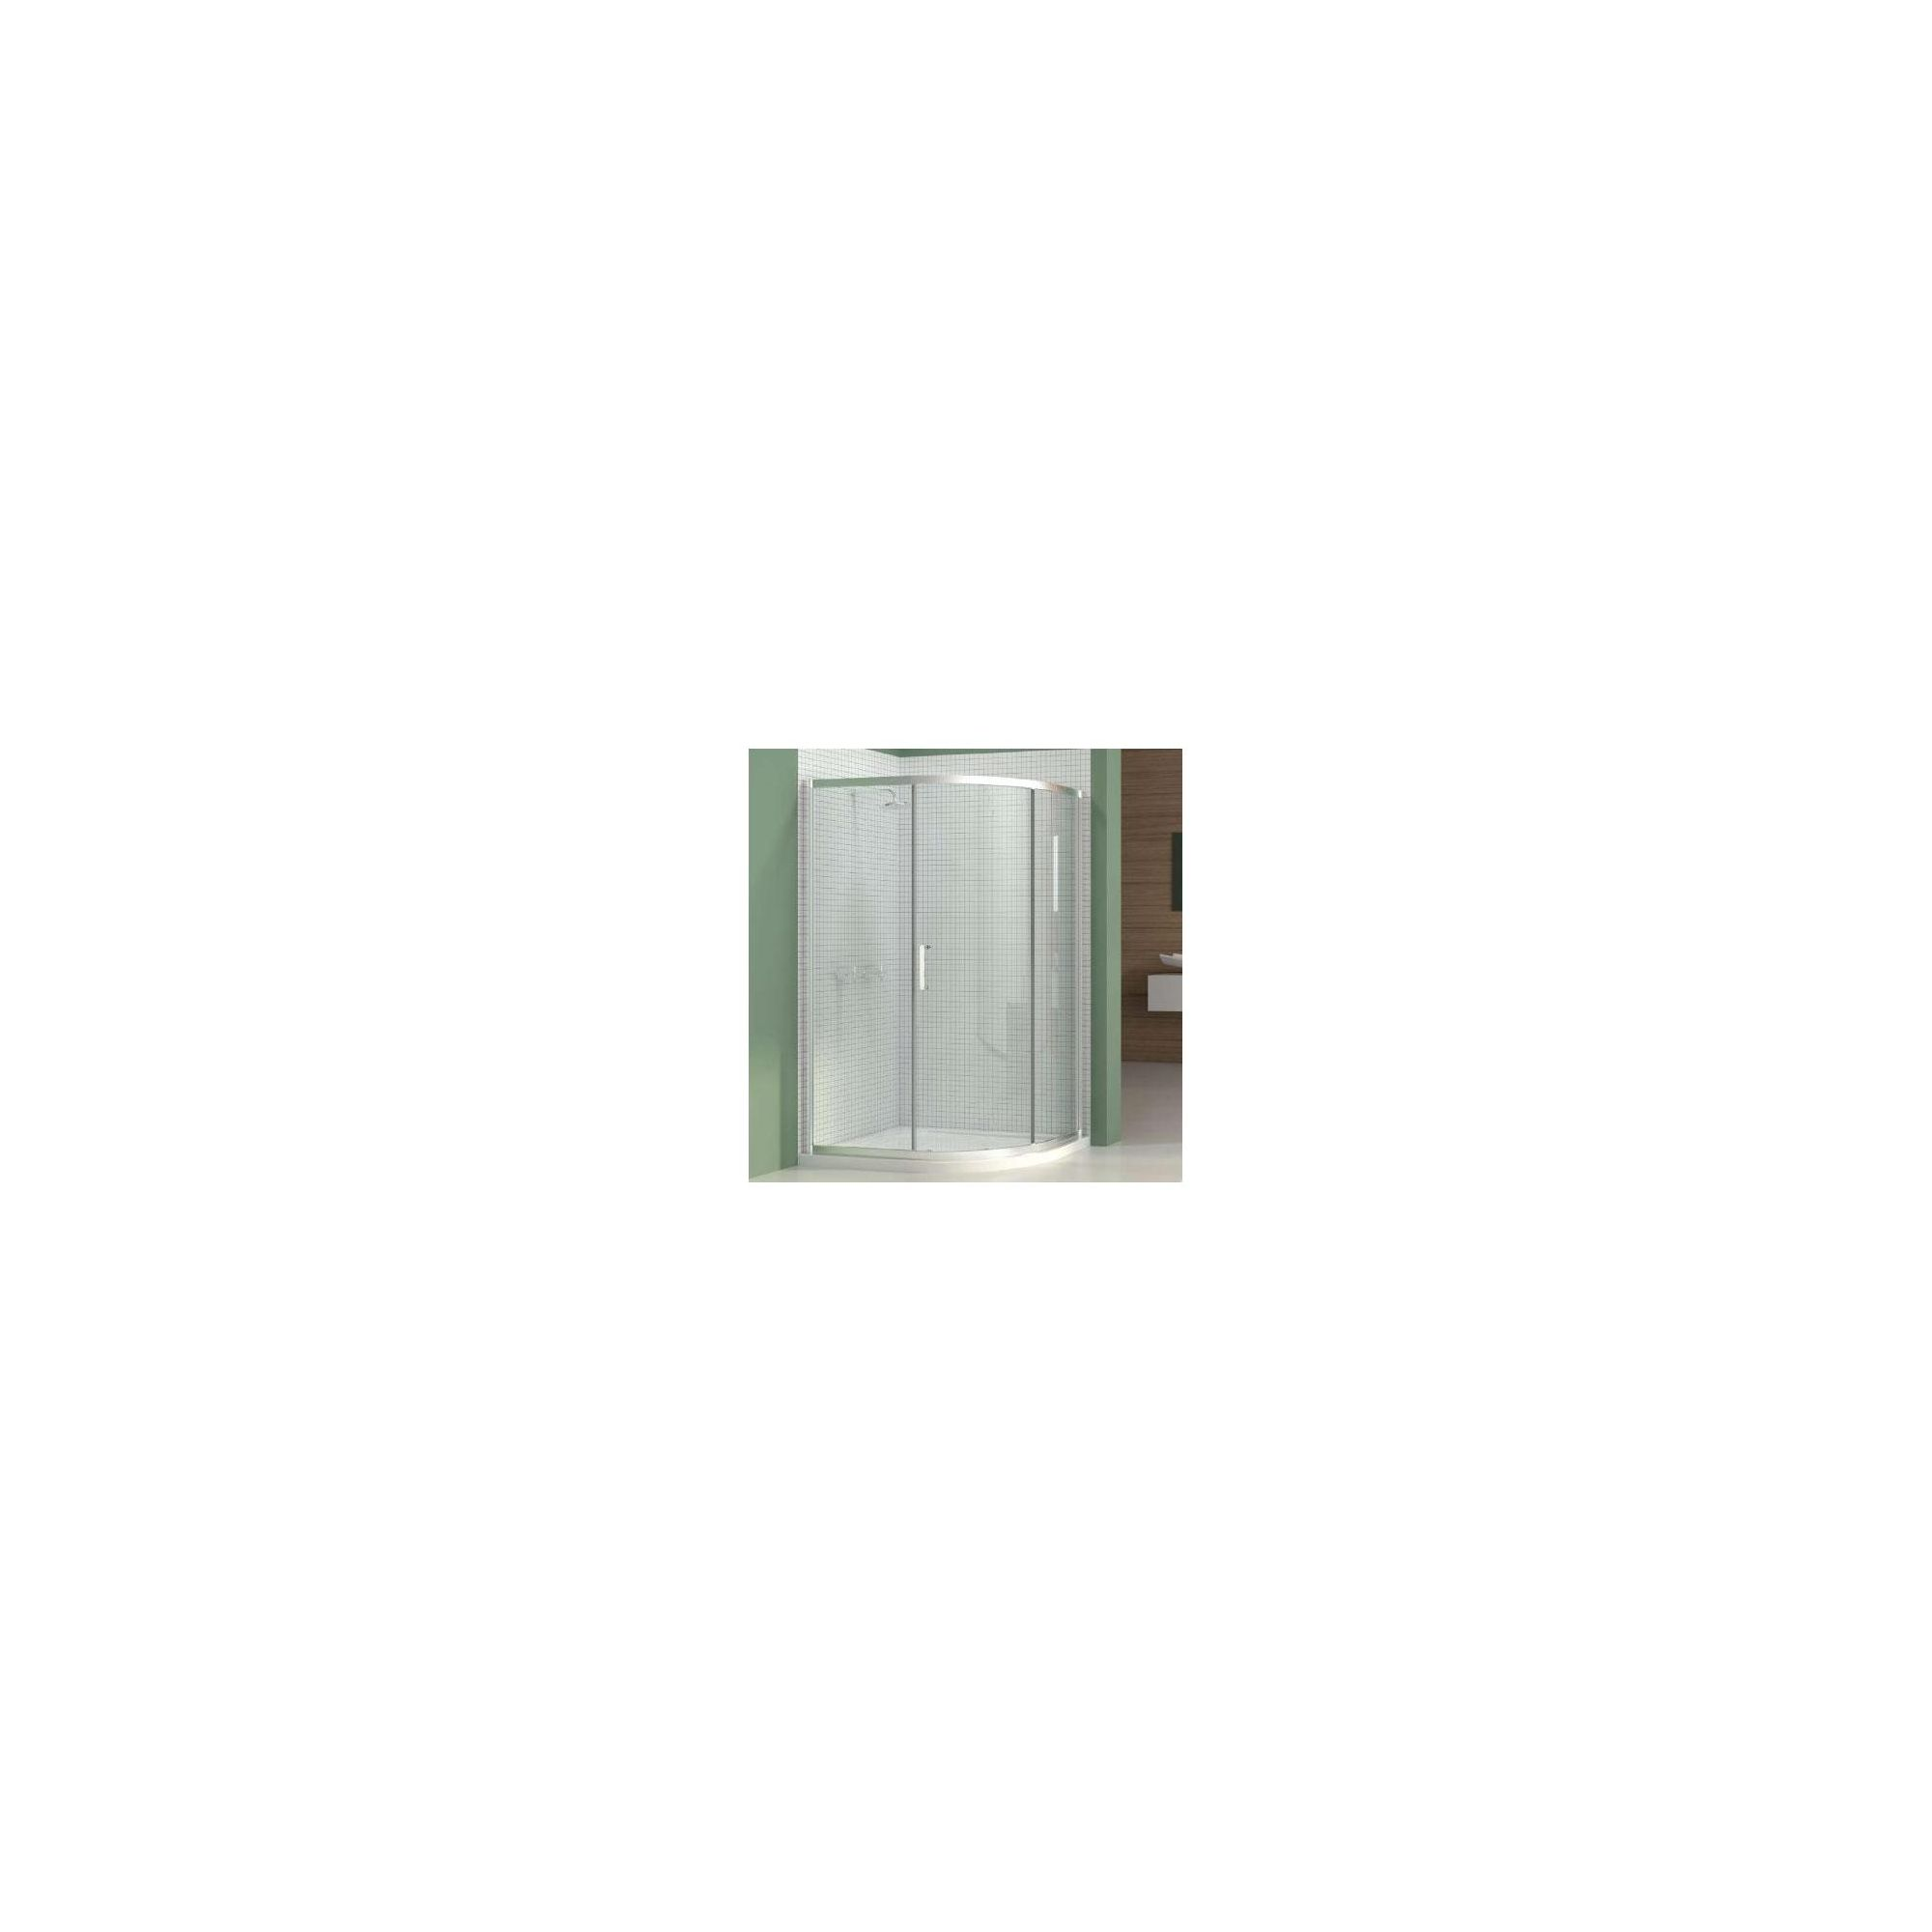 Merlyn Vivid Six Offset Quadrant Shower Enclosure, 1200mm x 900mm, Right Handed, Low Profile Tray, 6mm Glass at Tesco Direct